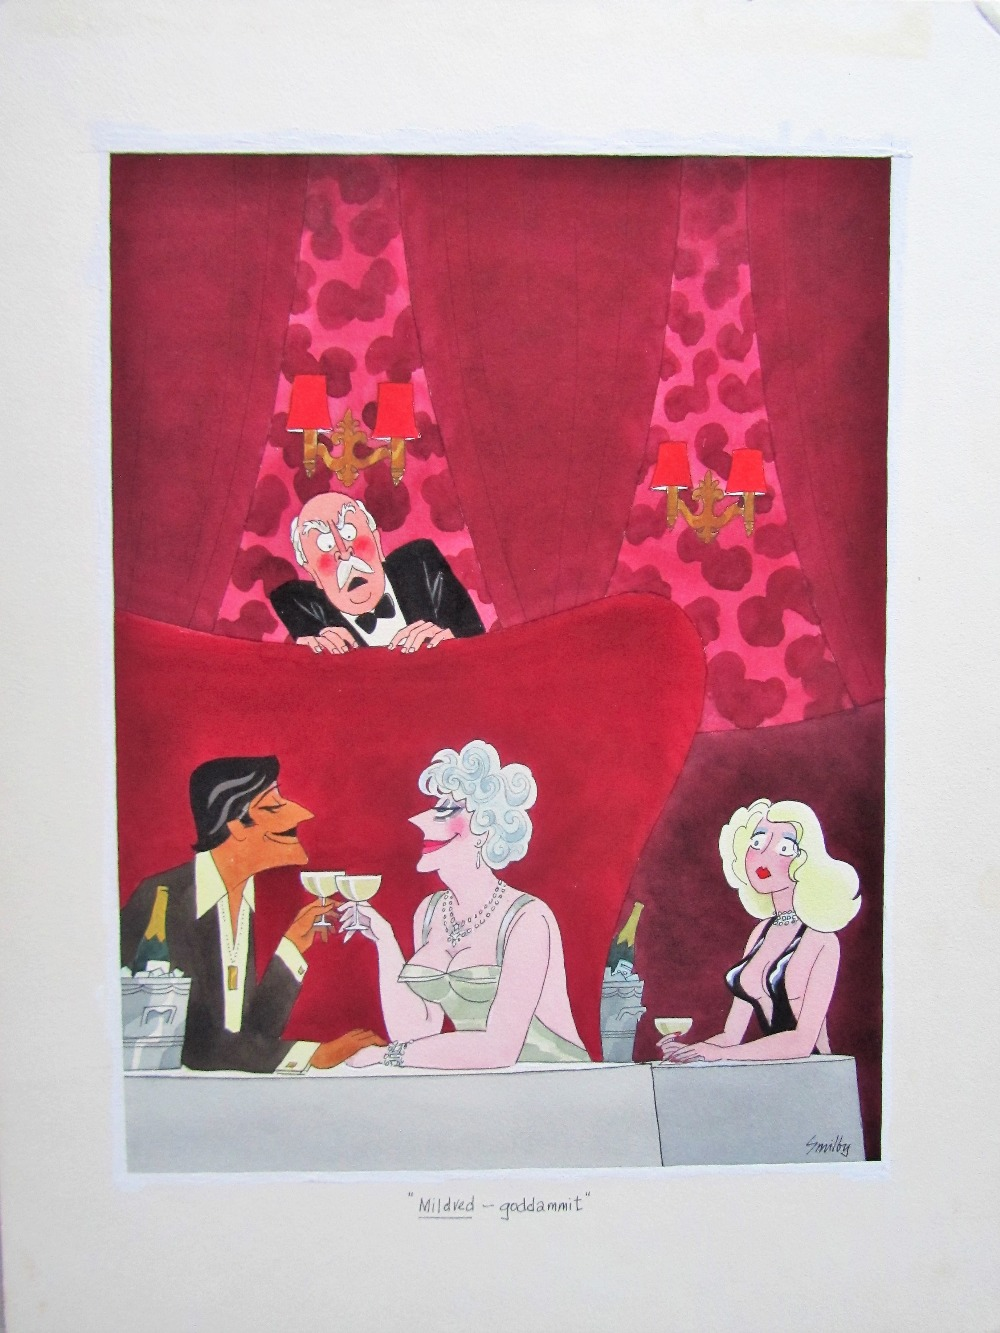 Lot 30 - Smilby, Francis Wilford-Smith 'Mildred - goddammit' cartoon for Diners Club Austria